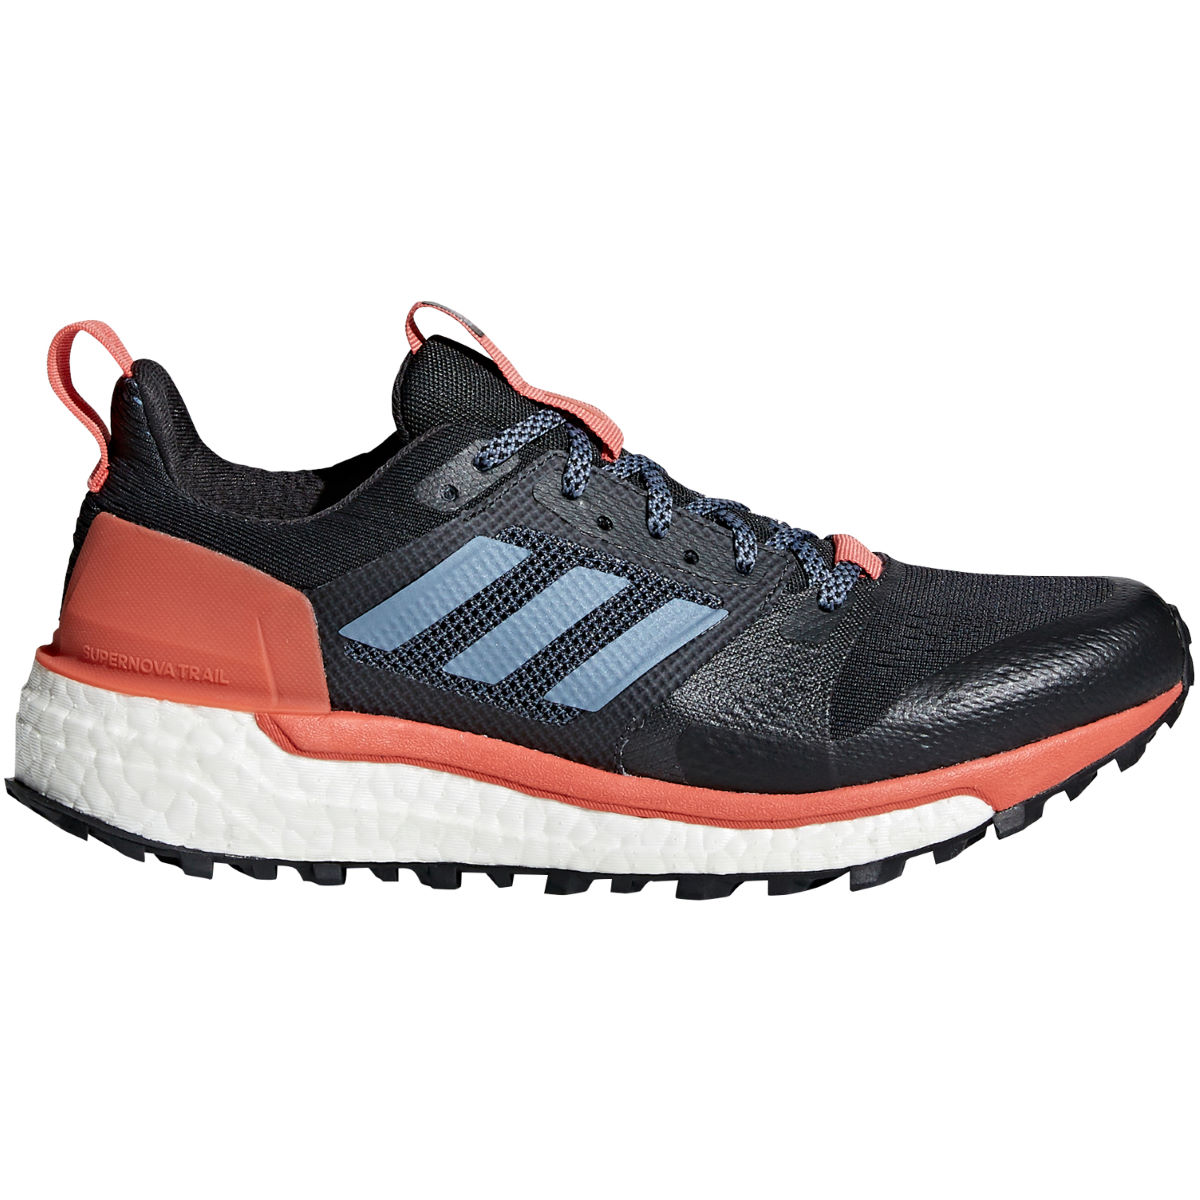 adidas Women's Supernova Trail Shoes - Zapatillas de trail running